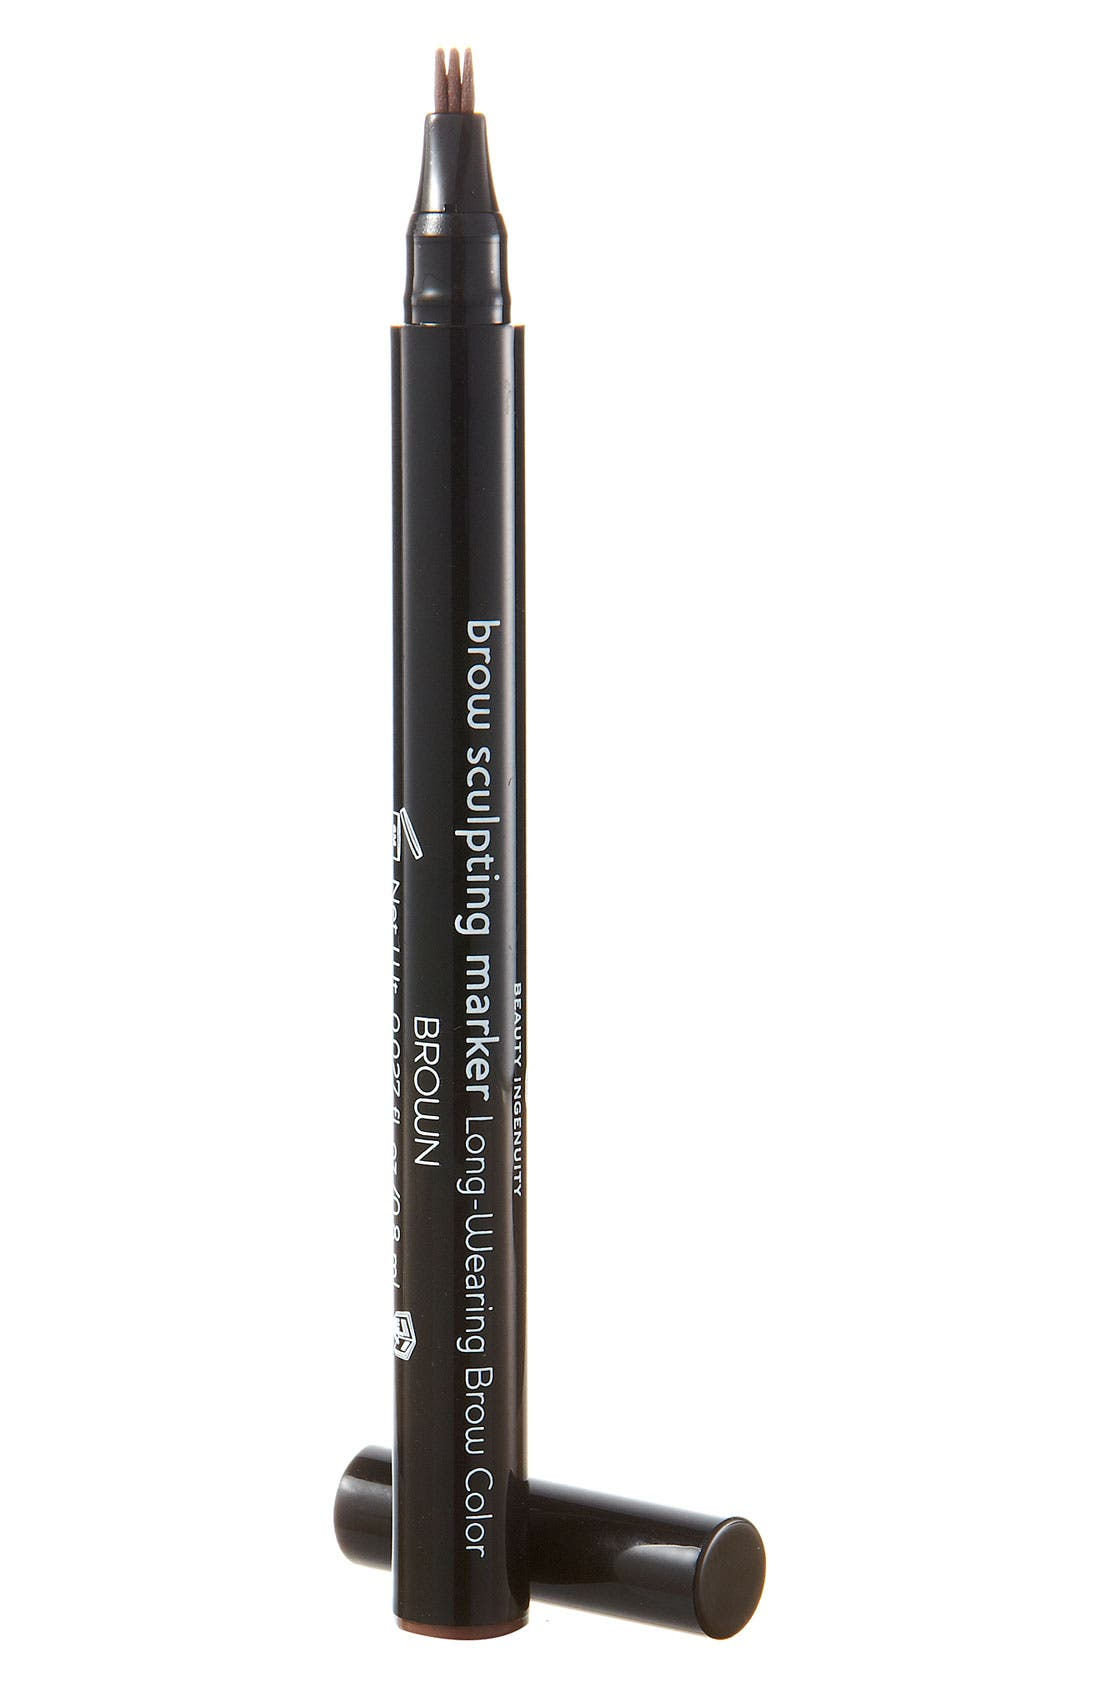 Laura Geller Beauty Brow Sculpting Marker